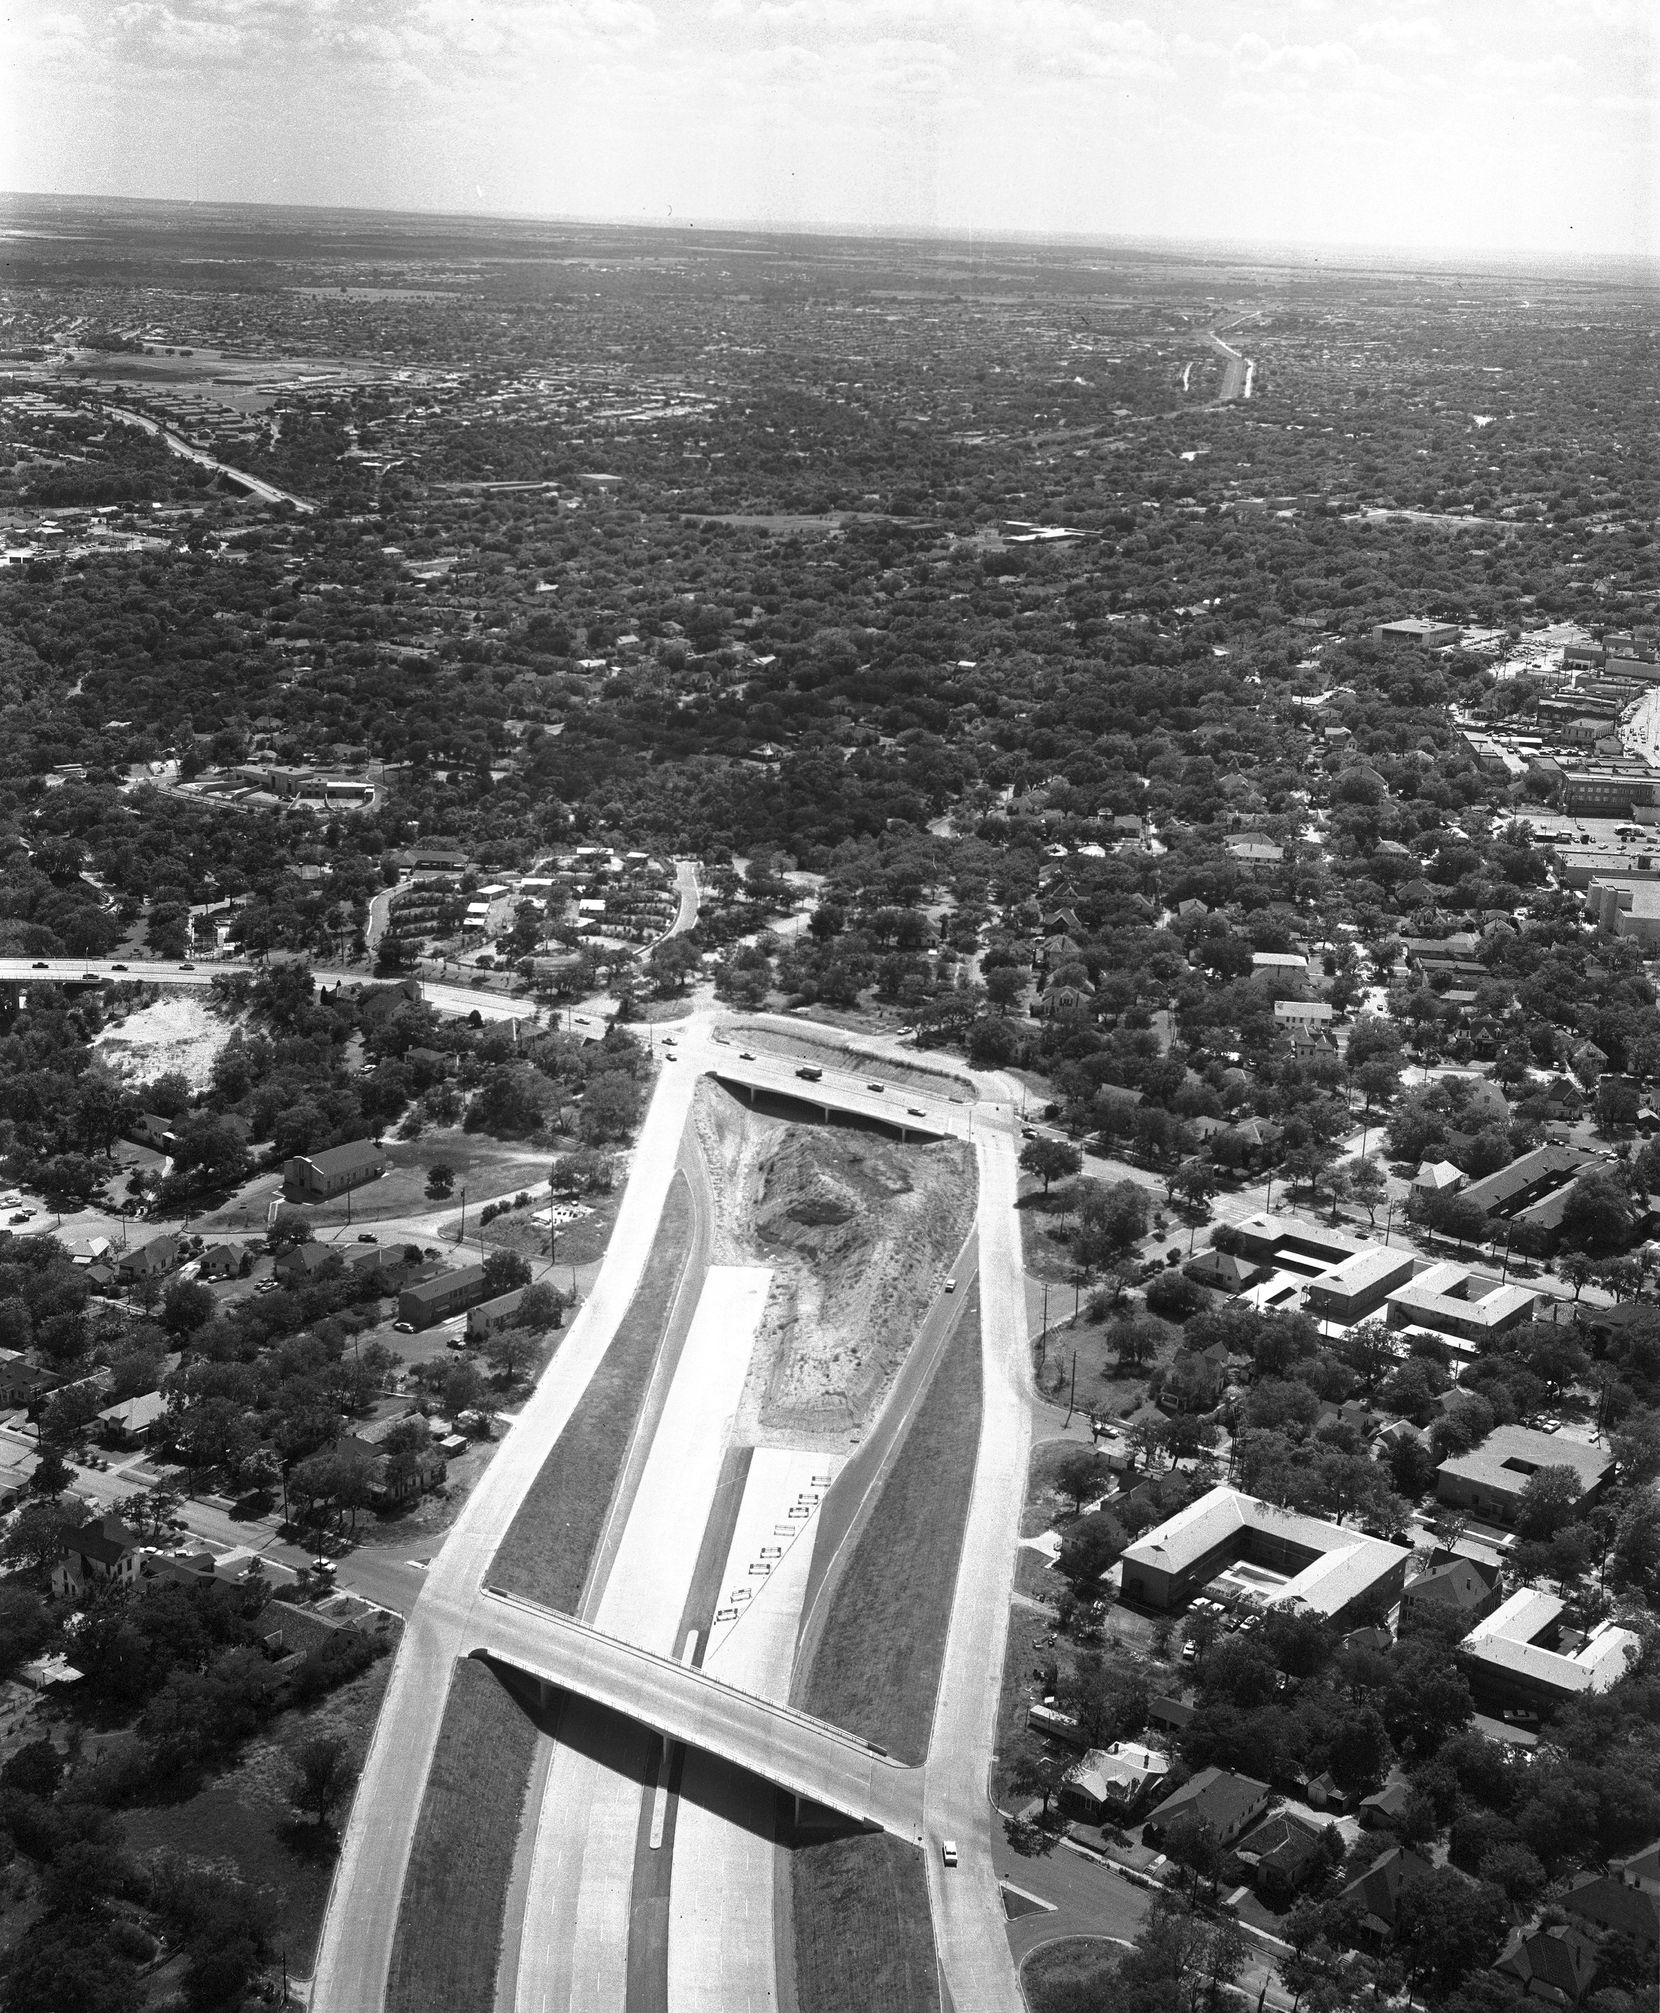 This 1959 photo shows how the construction of R.L Thornton Freeway, I-35E, cut directly through neighborhoods just south of downtown Dallas, demolishing homes and businesses as the work rolled on. This view, facing south, was taken at the point that the construction had proceeded to the intersection with Marsalis Avenue, severing connections between the east and west neighborhoods of Oak Cliff.